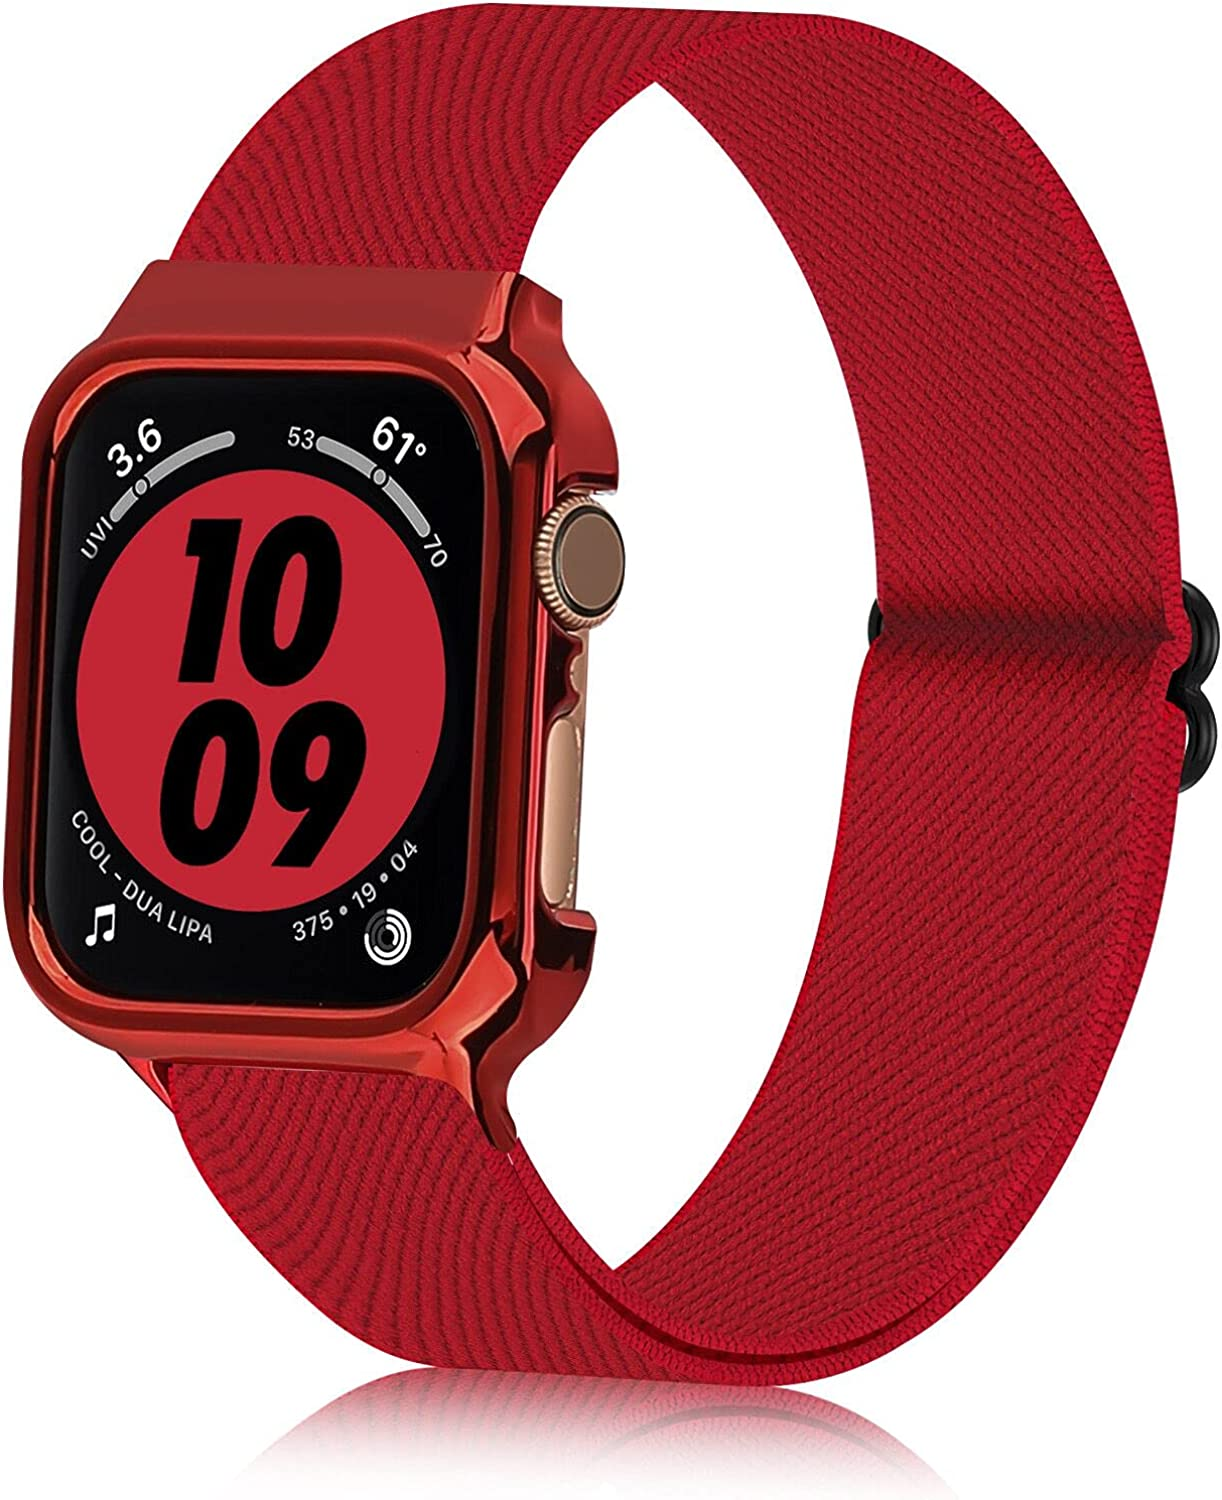 Bandiction Nylon Stretch Band Compatible with Apple Watch Bands 38mm 40mm 42mm 44mm, iwatch bands with Protective Case,Adjustable Elastic Stretches Women Men apple watch band for iWatch Series SE/ 6/5/4